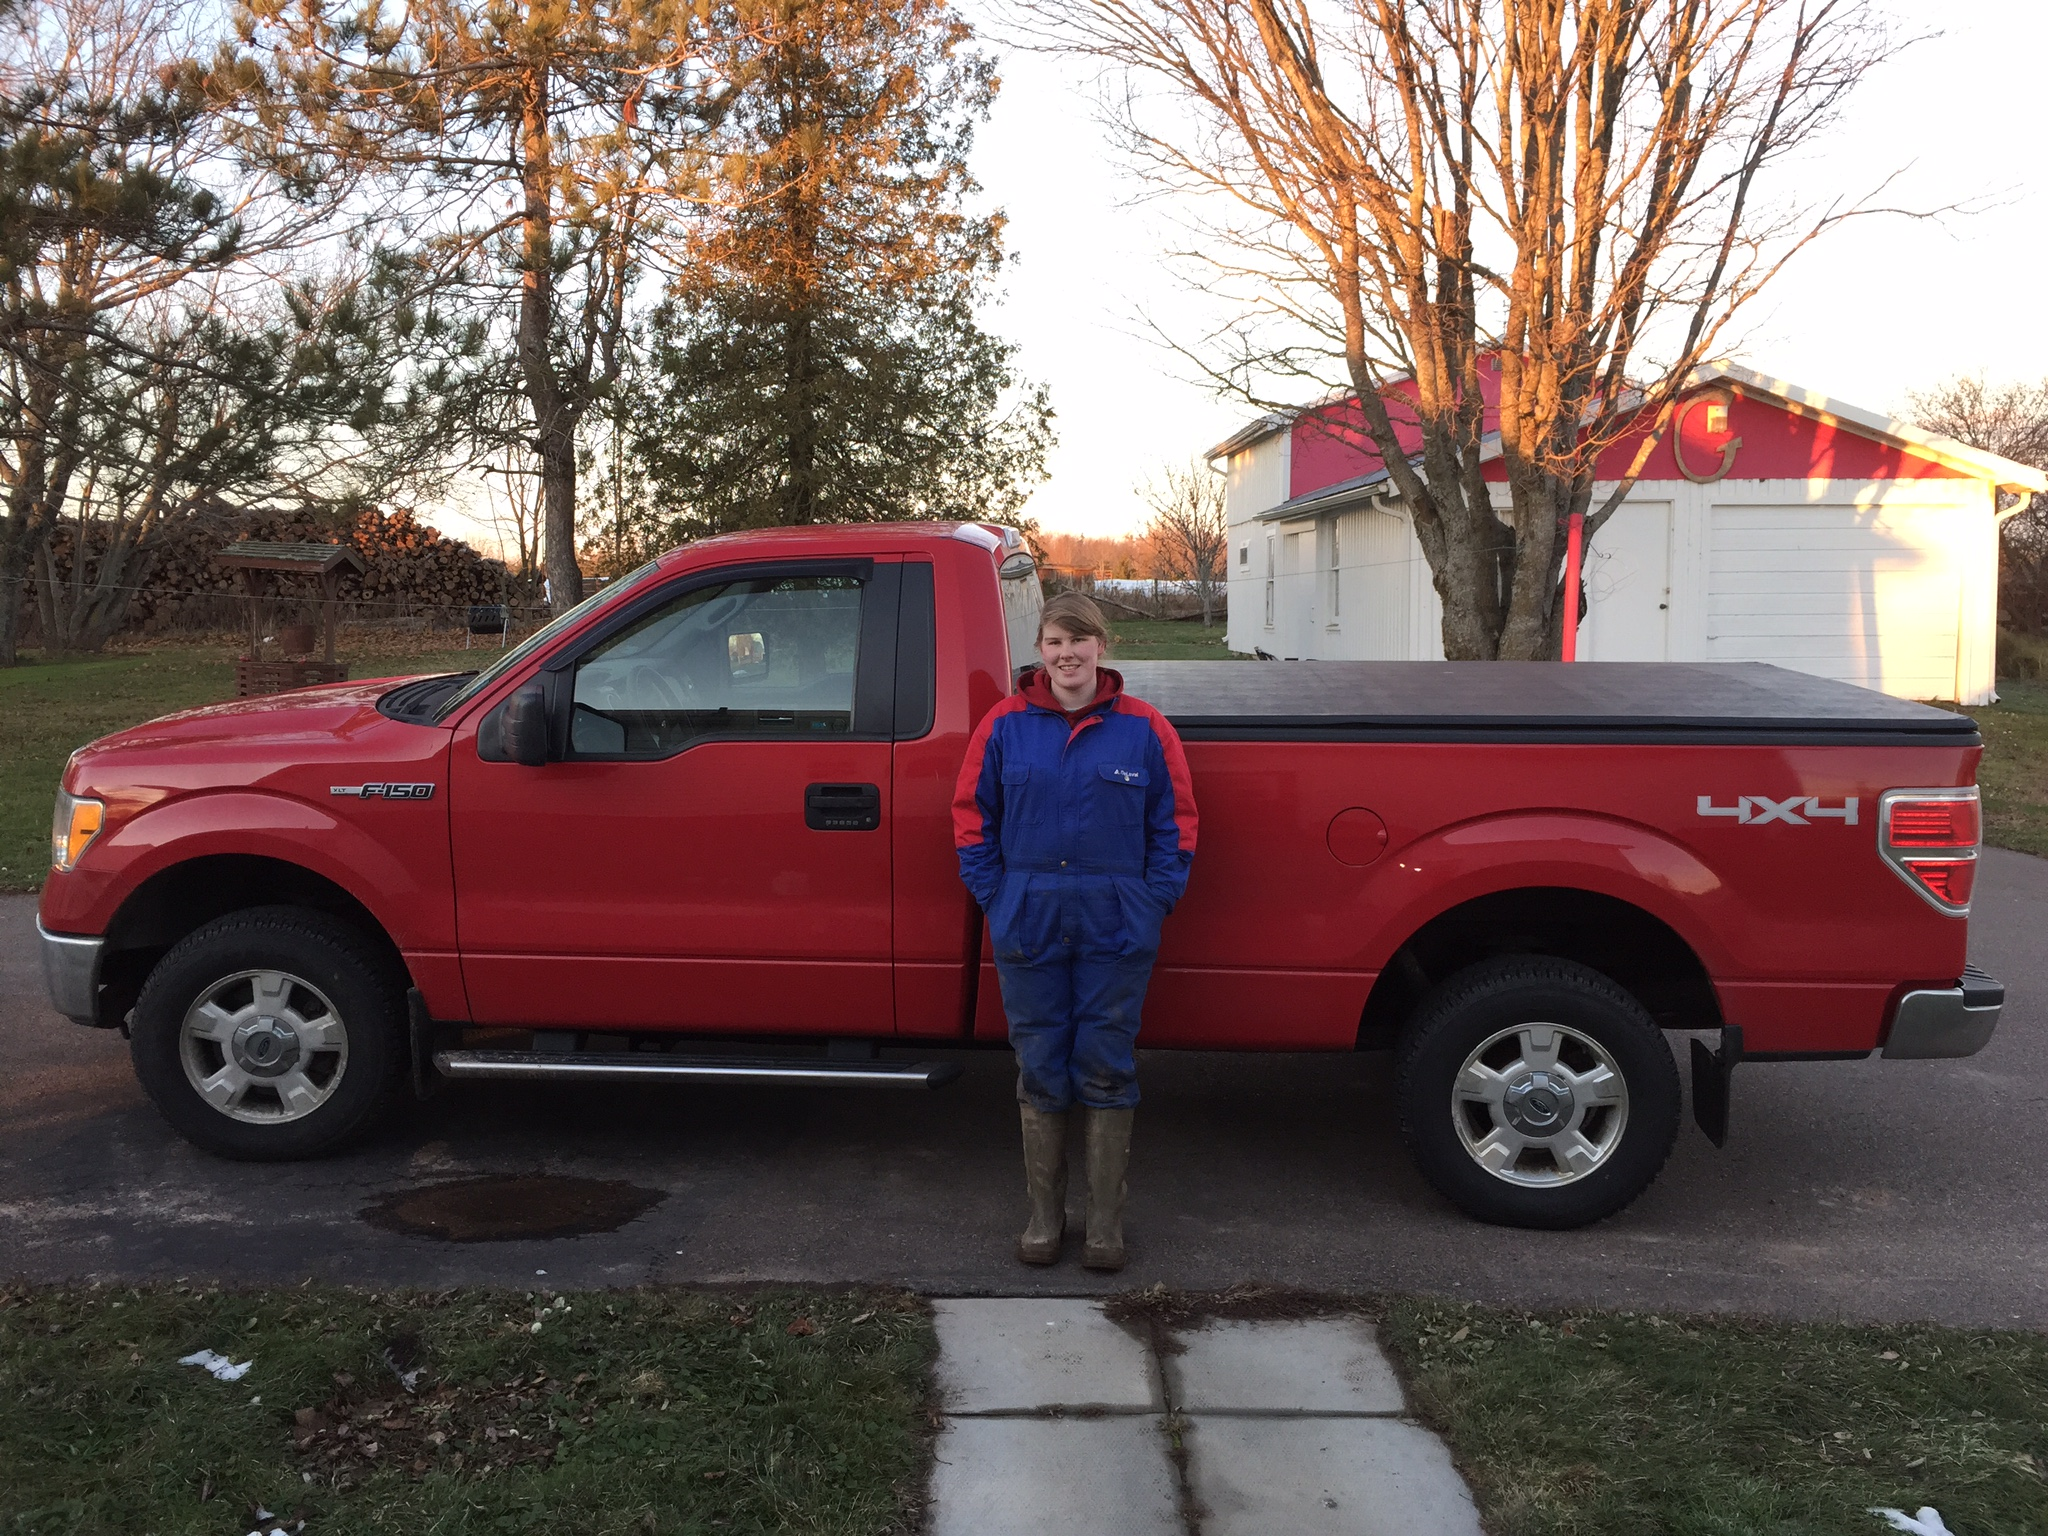 Just look for Susan in the red Ford F-150